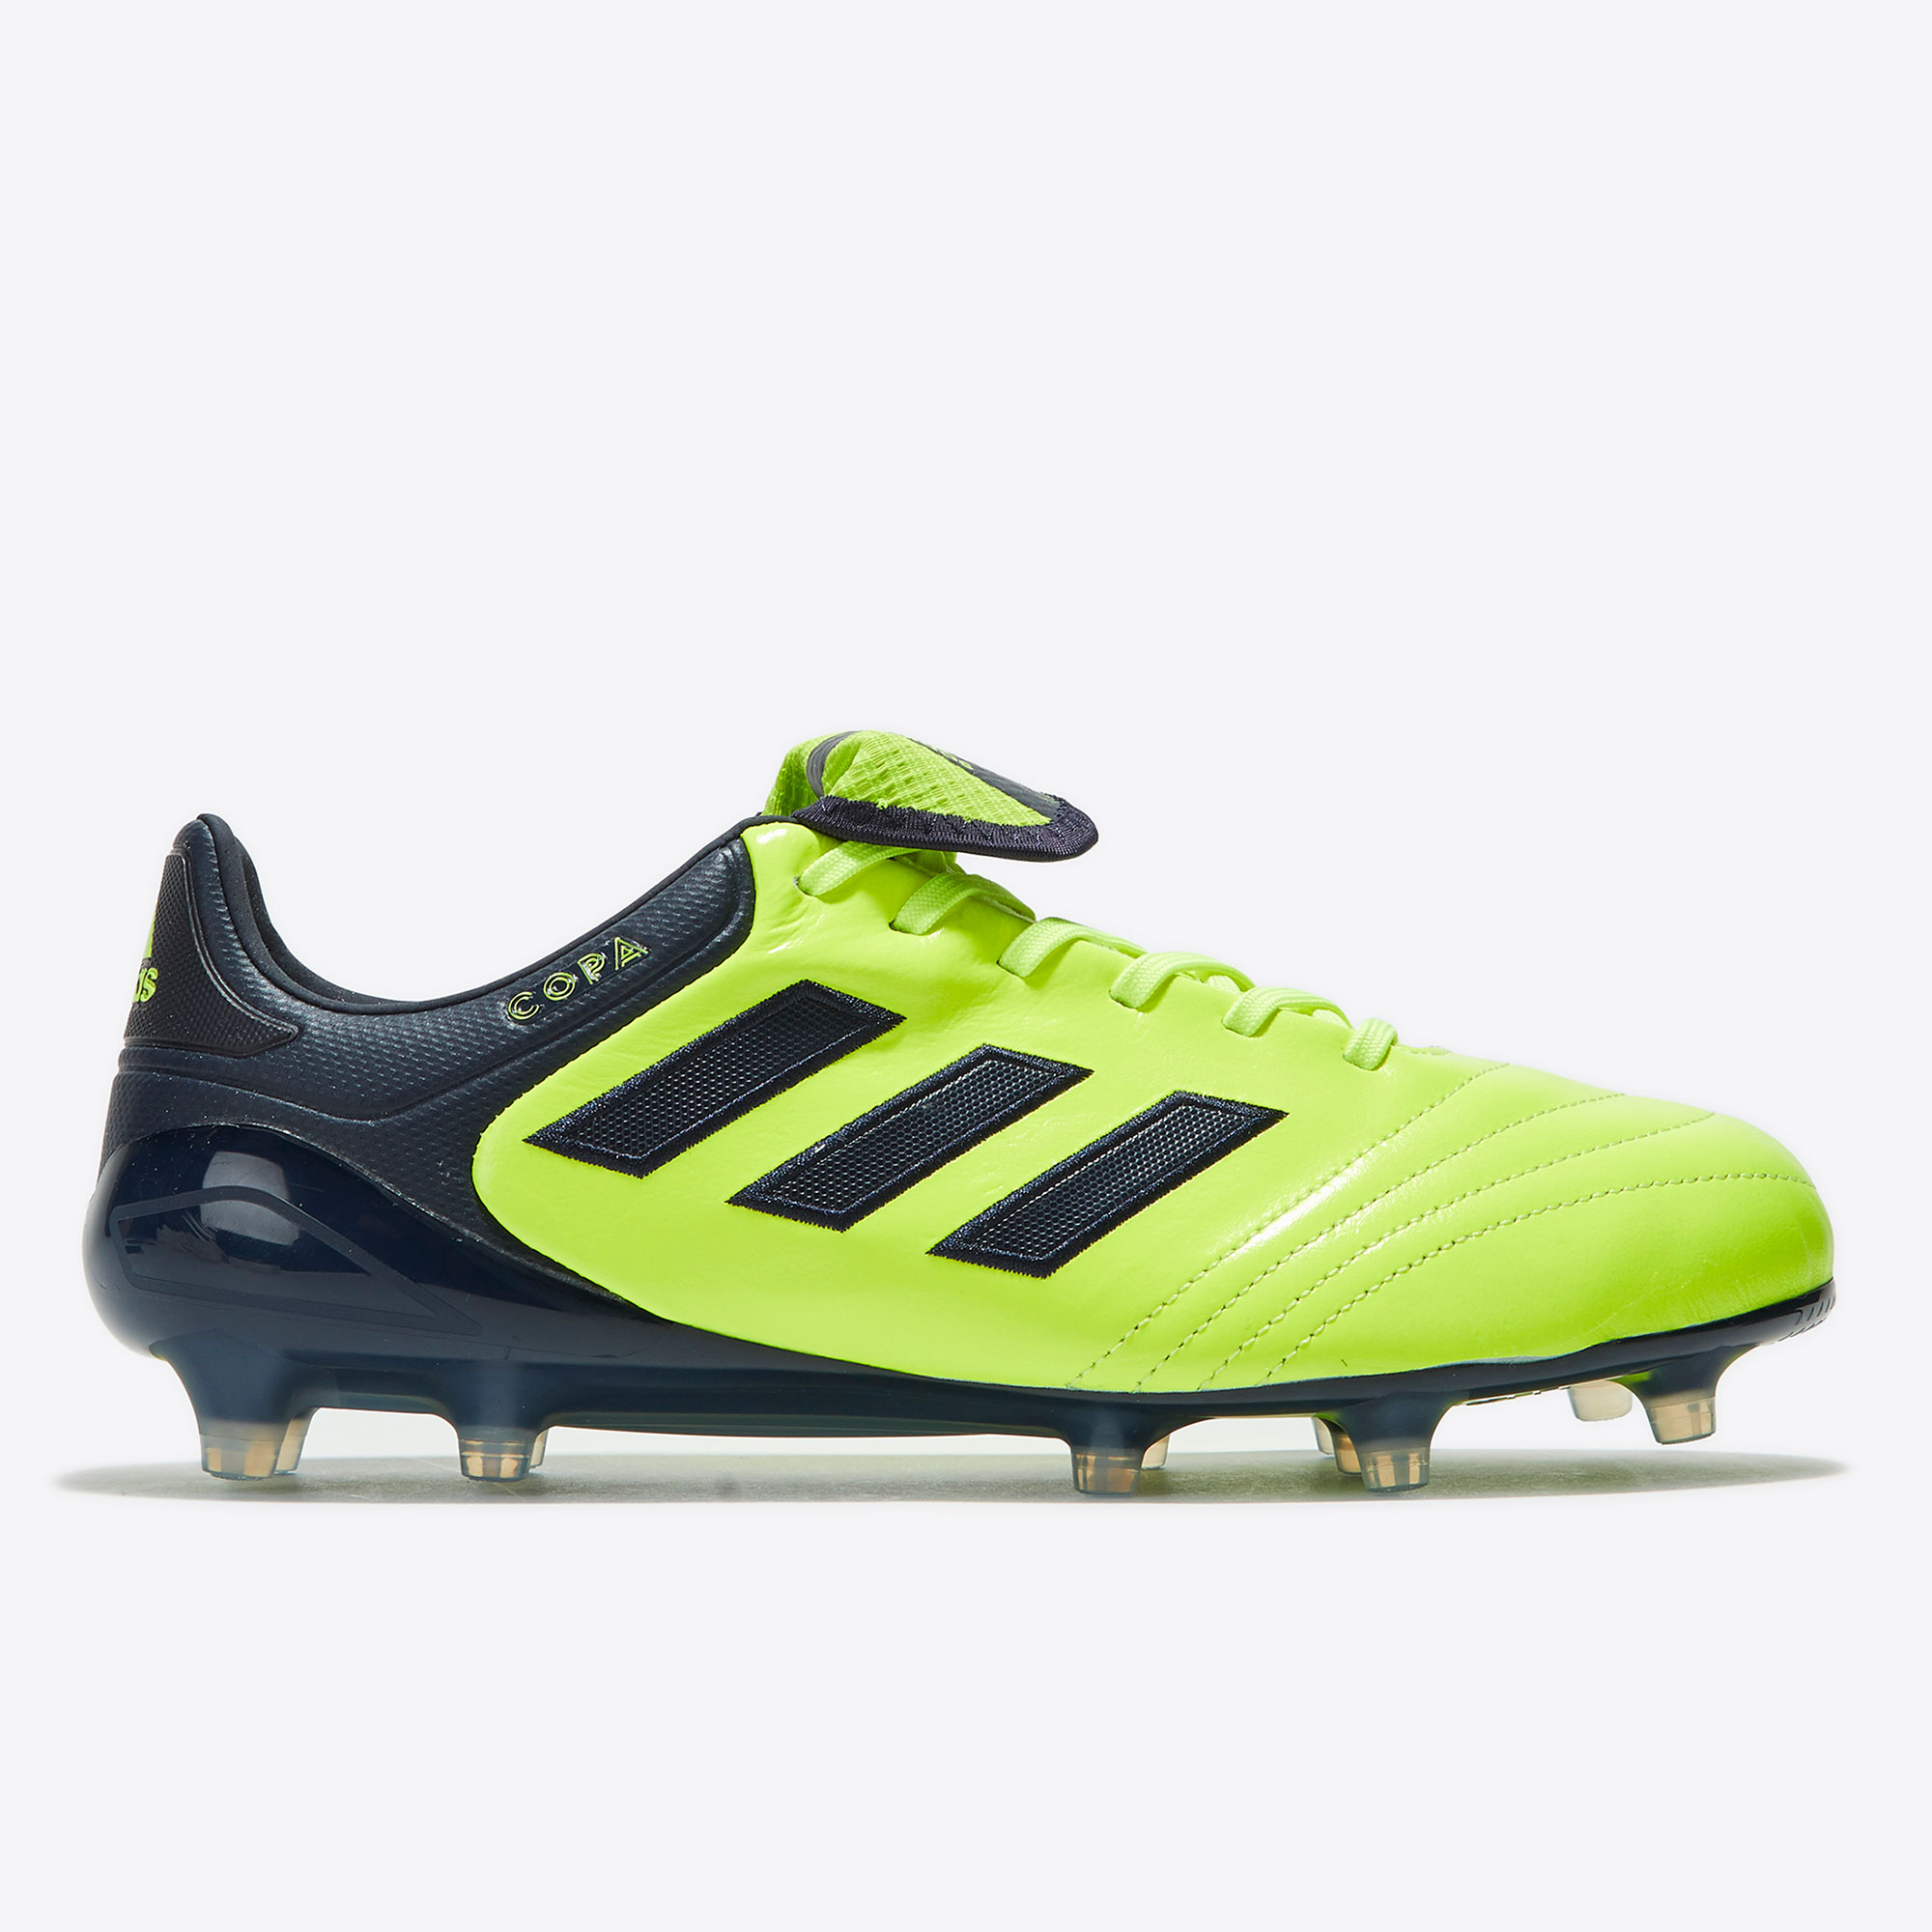 adidas Copa 17.1 Firm Ground Football Boots - Solar Yellow/Legend Ink/